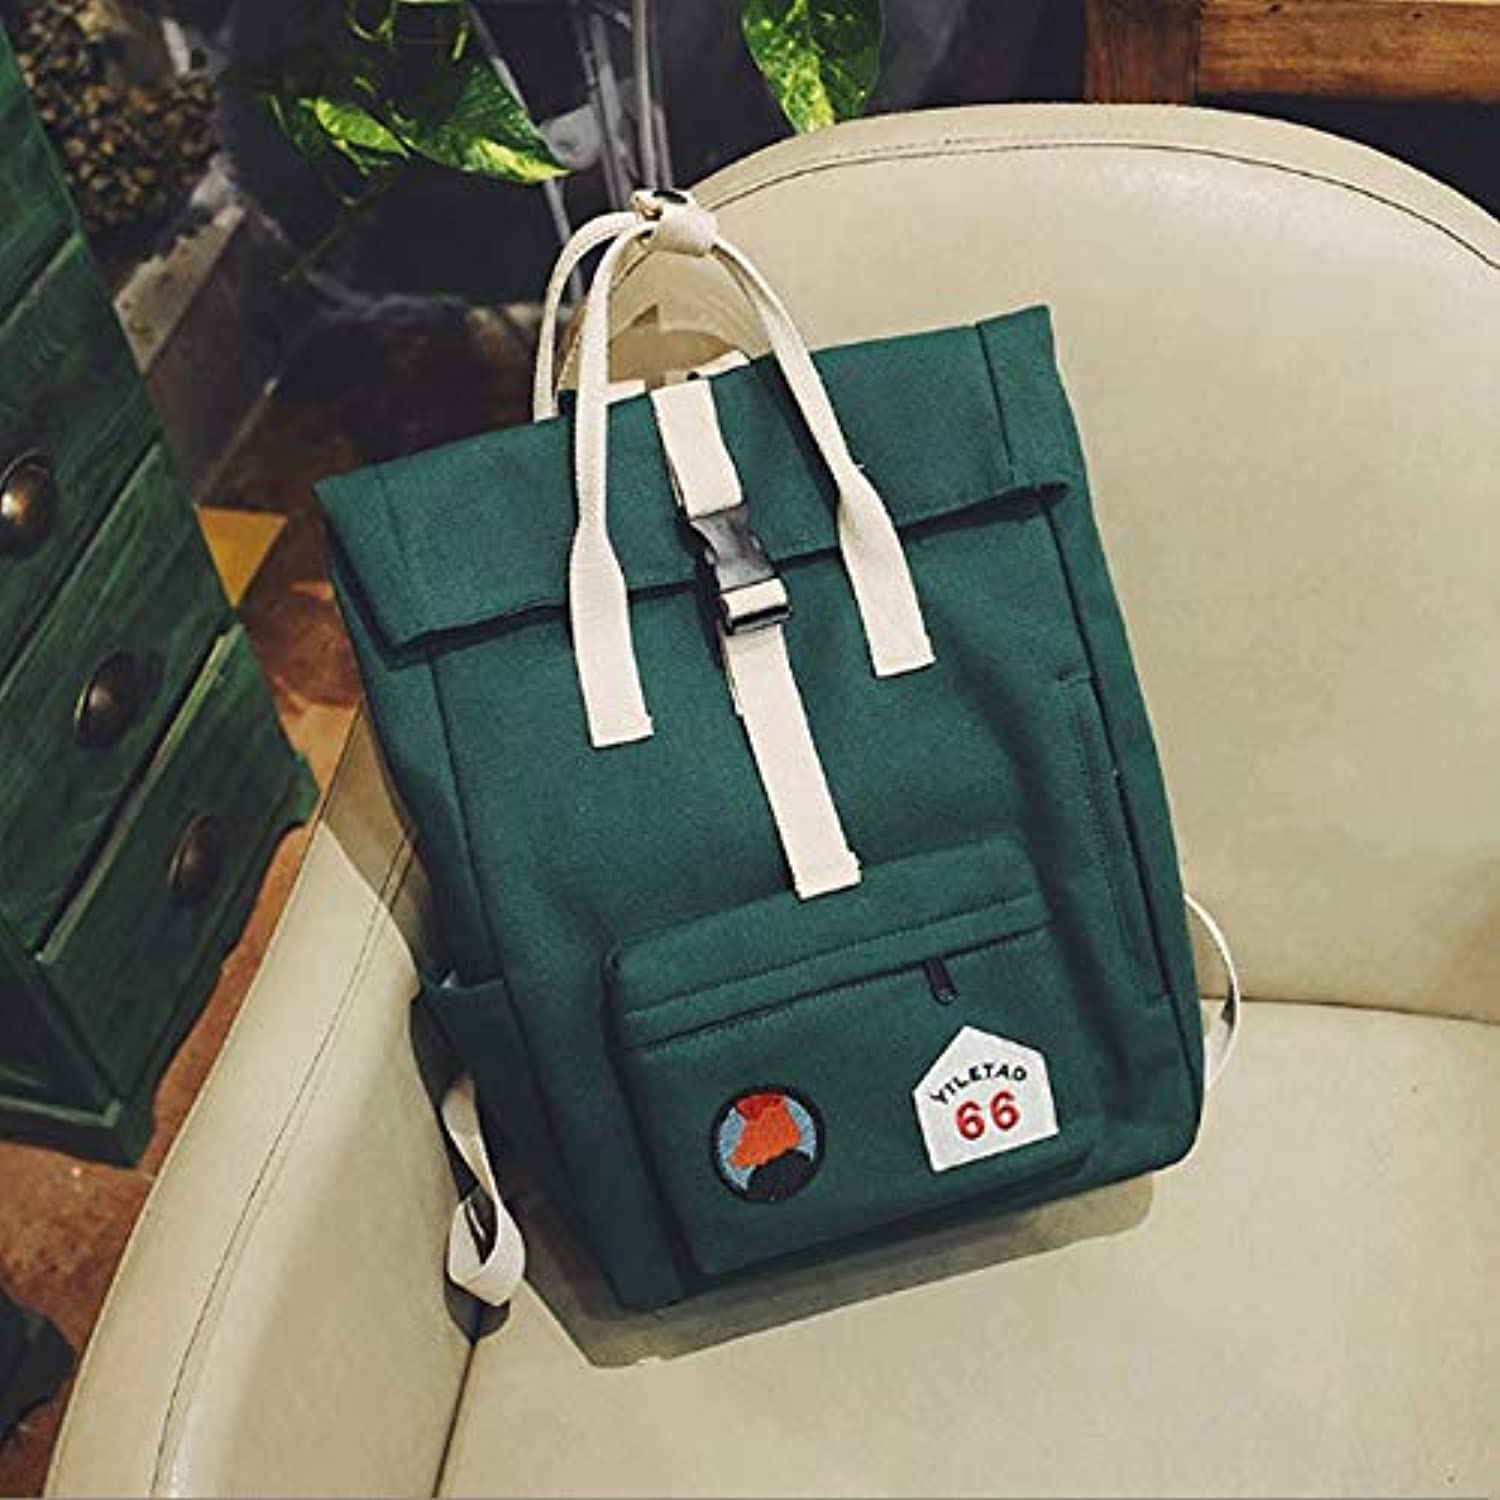 GJ Backpack  Female The New Student Bag Campus Backpack Leisure Bag Pure color Sports Backpack Travel Bags (color   Green)